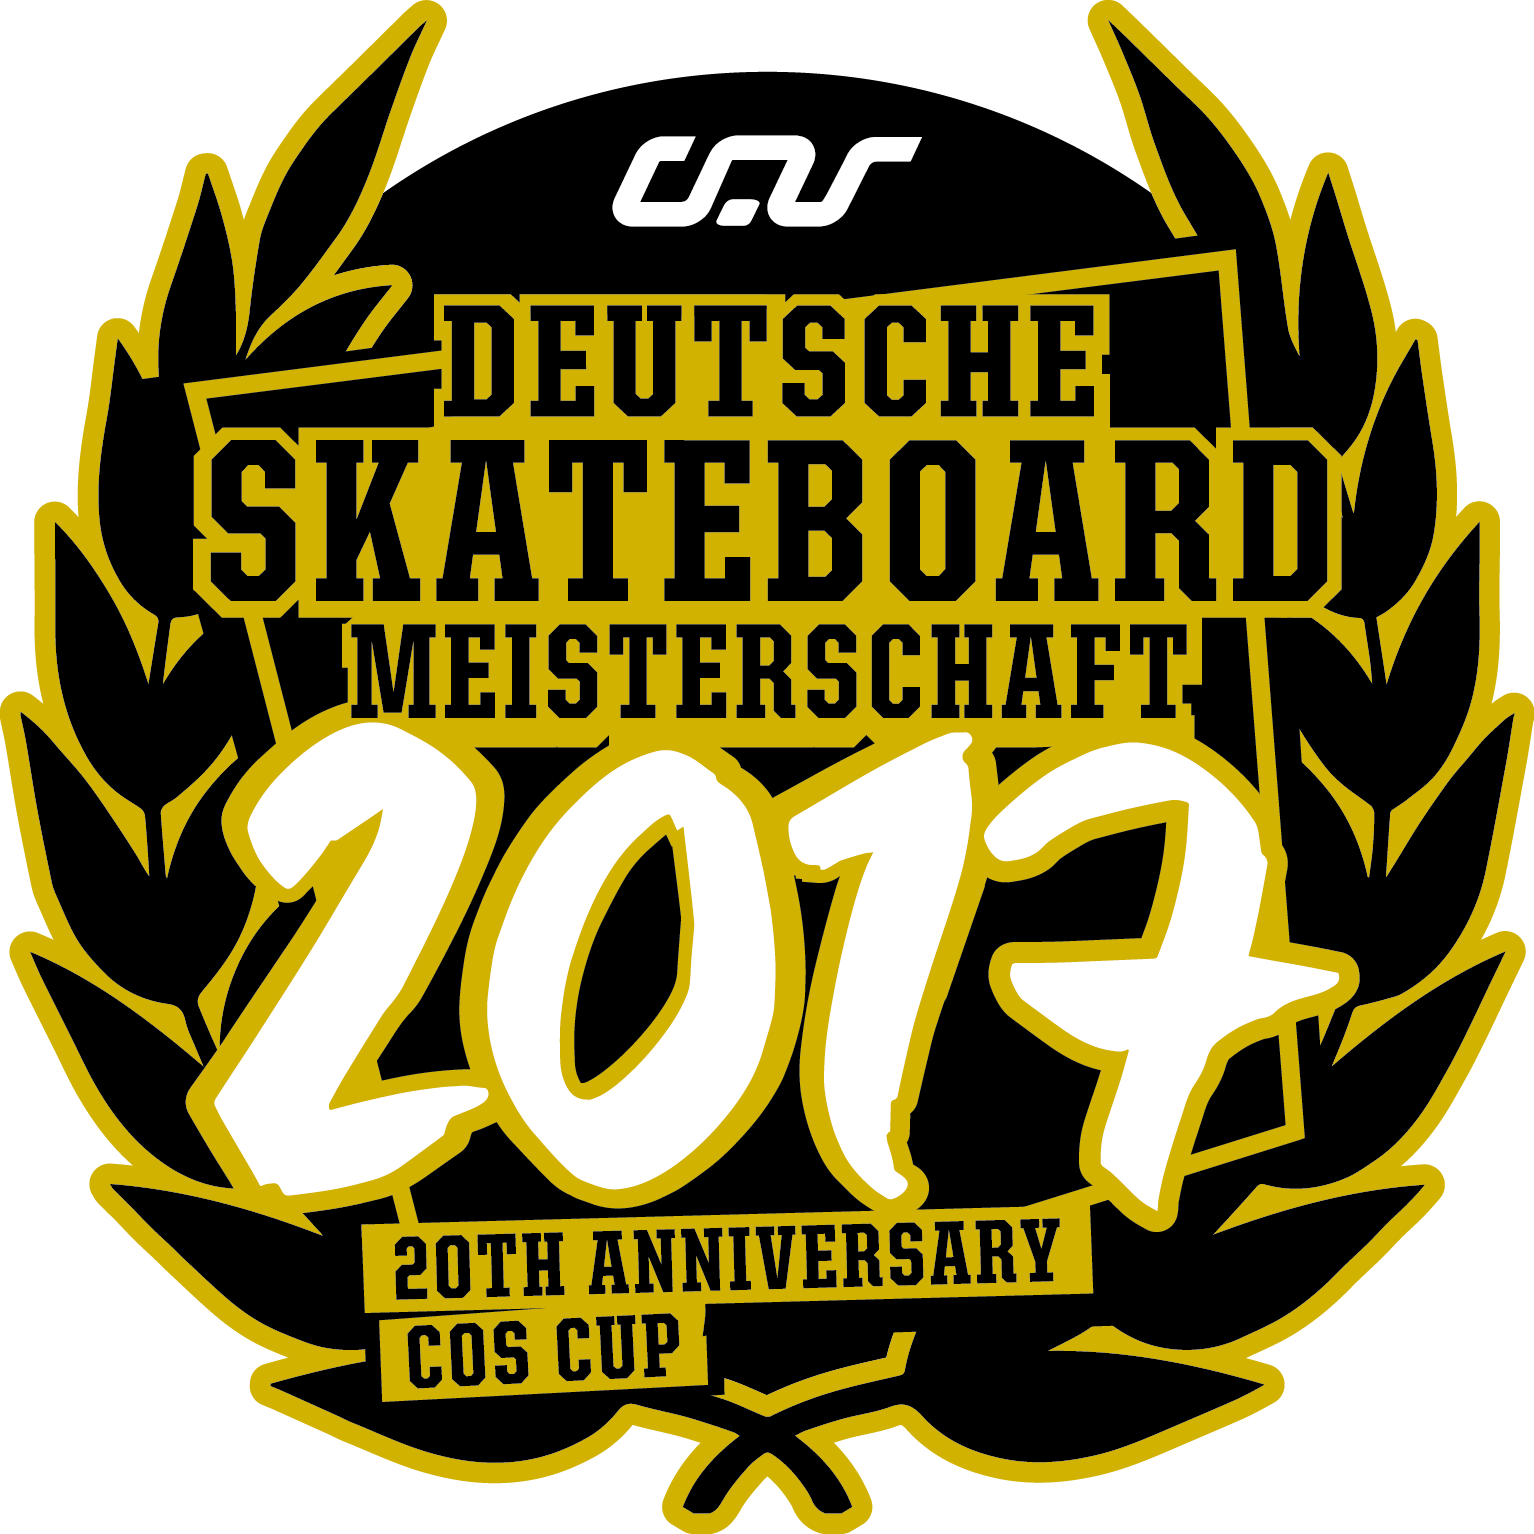 Club of Skaters